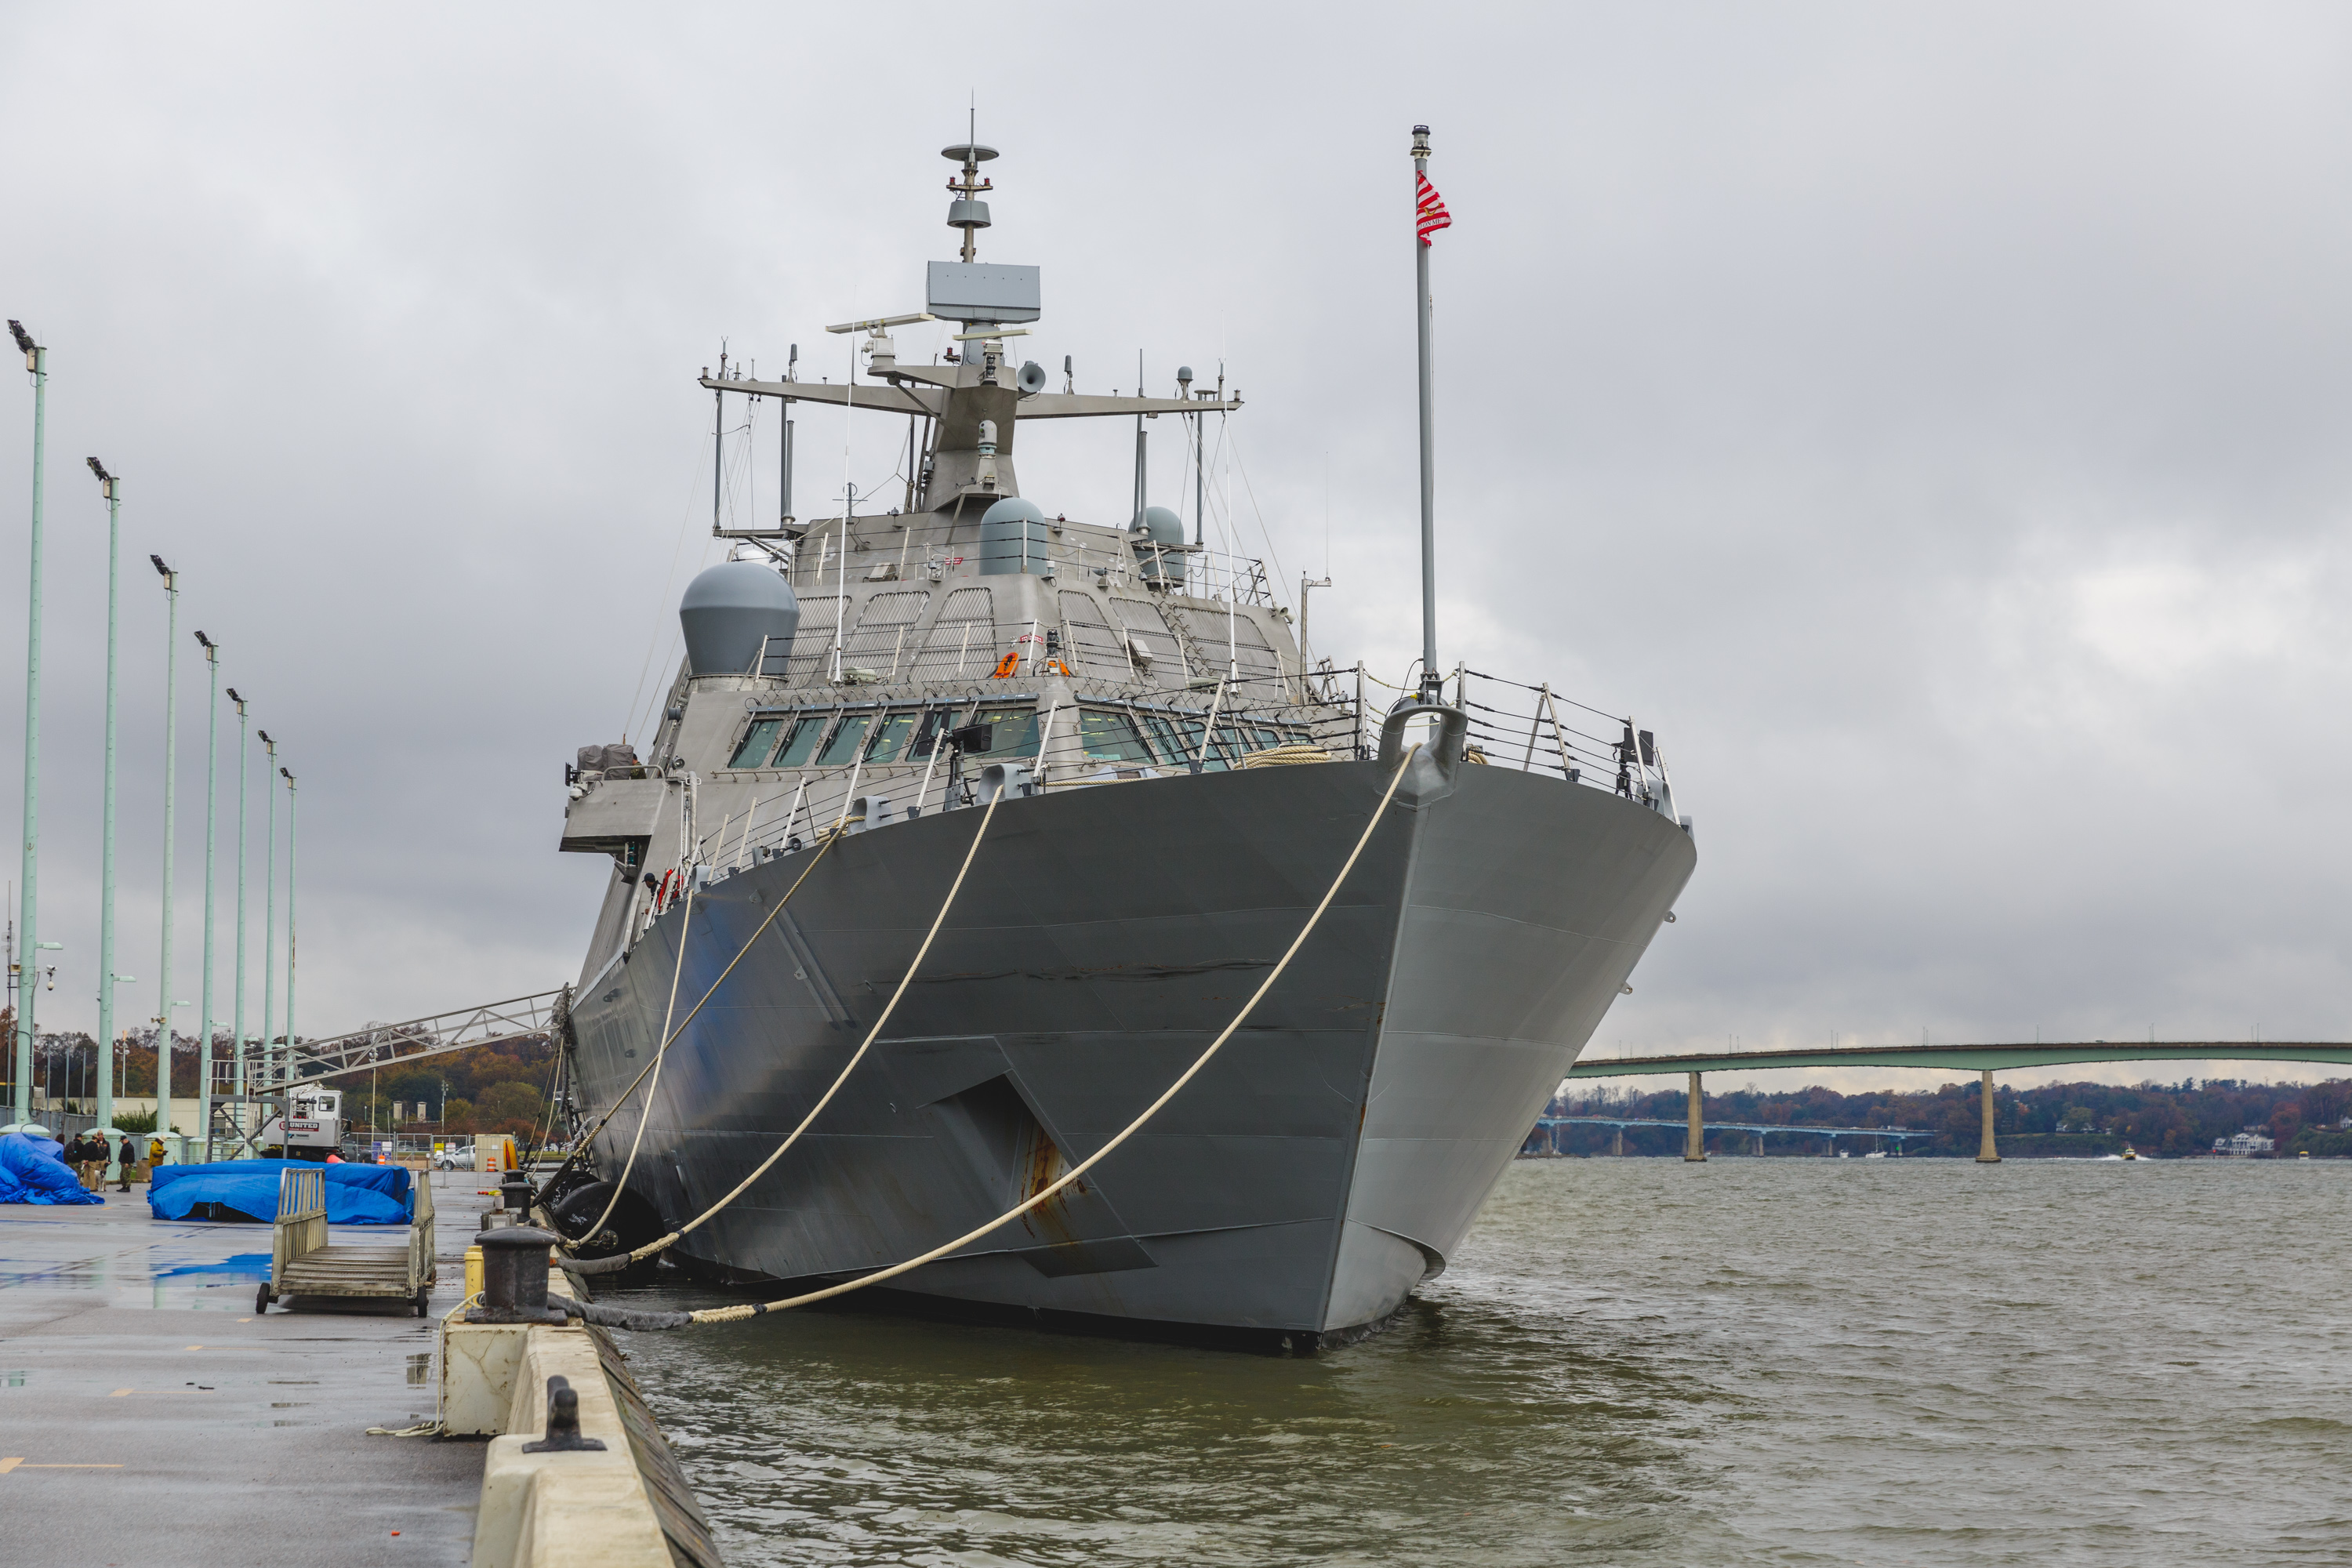 LCS : Littoral Combat Ship - Page 5 45813894022_2577dcf43d_o